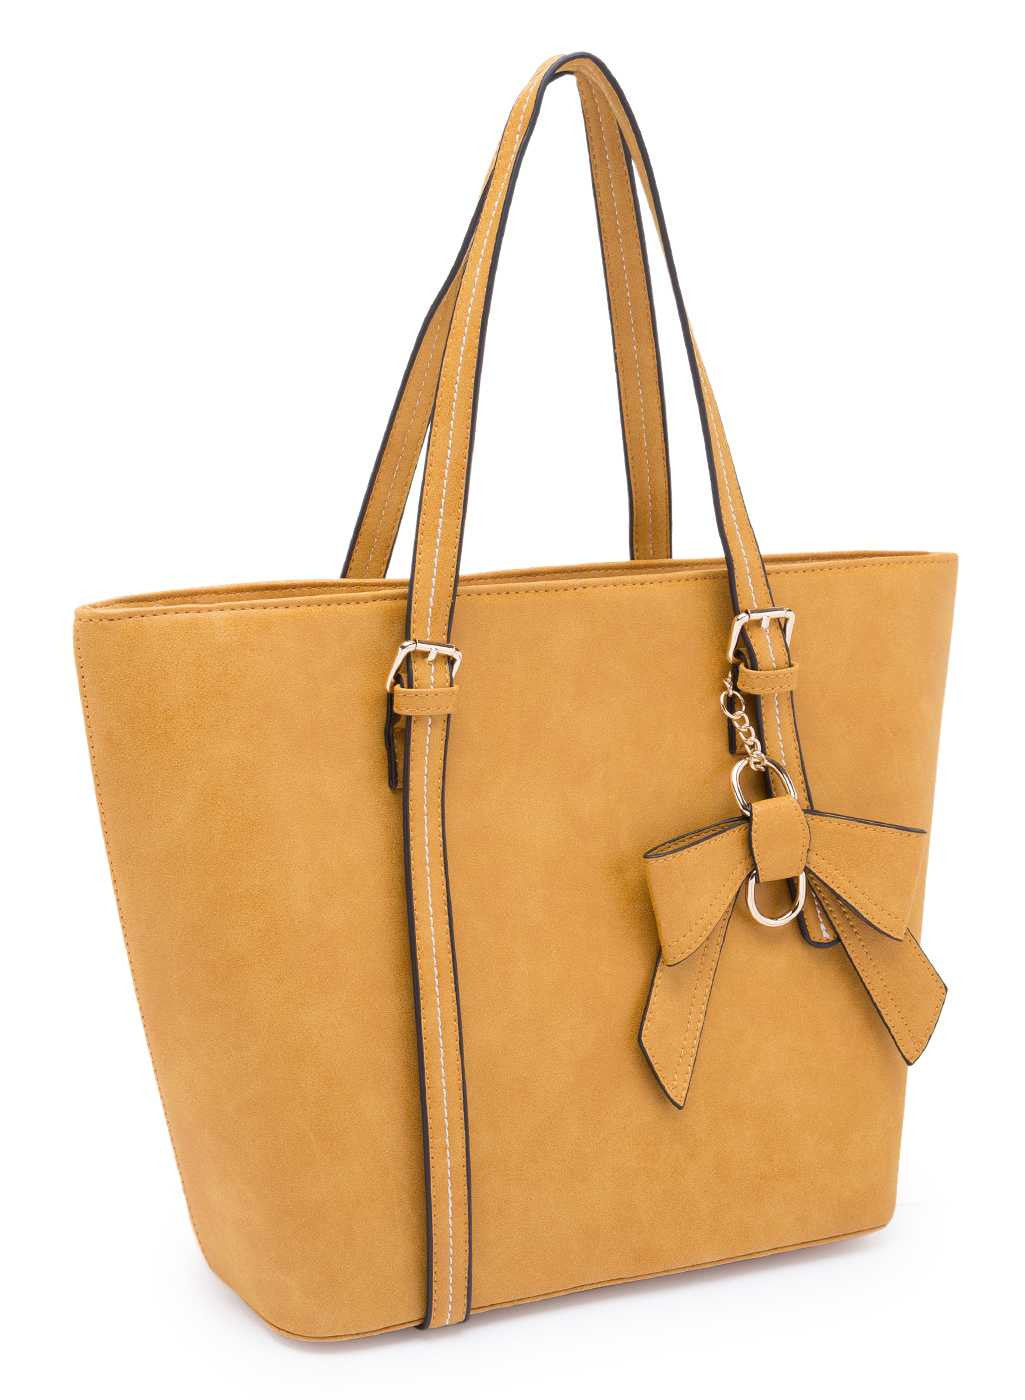 Clover Bow Tote Bag